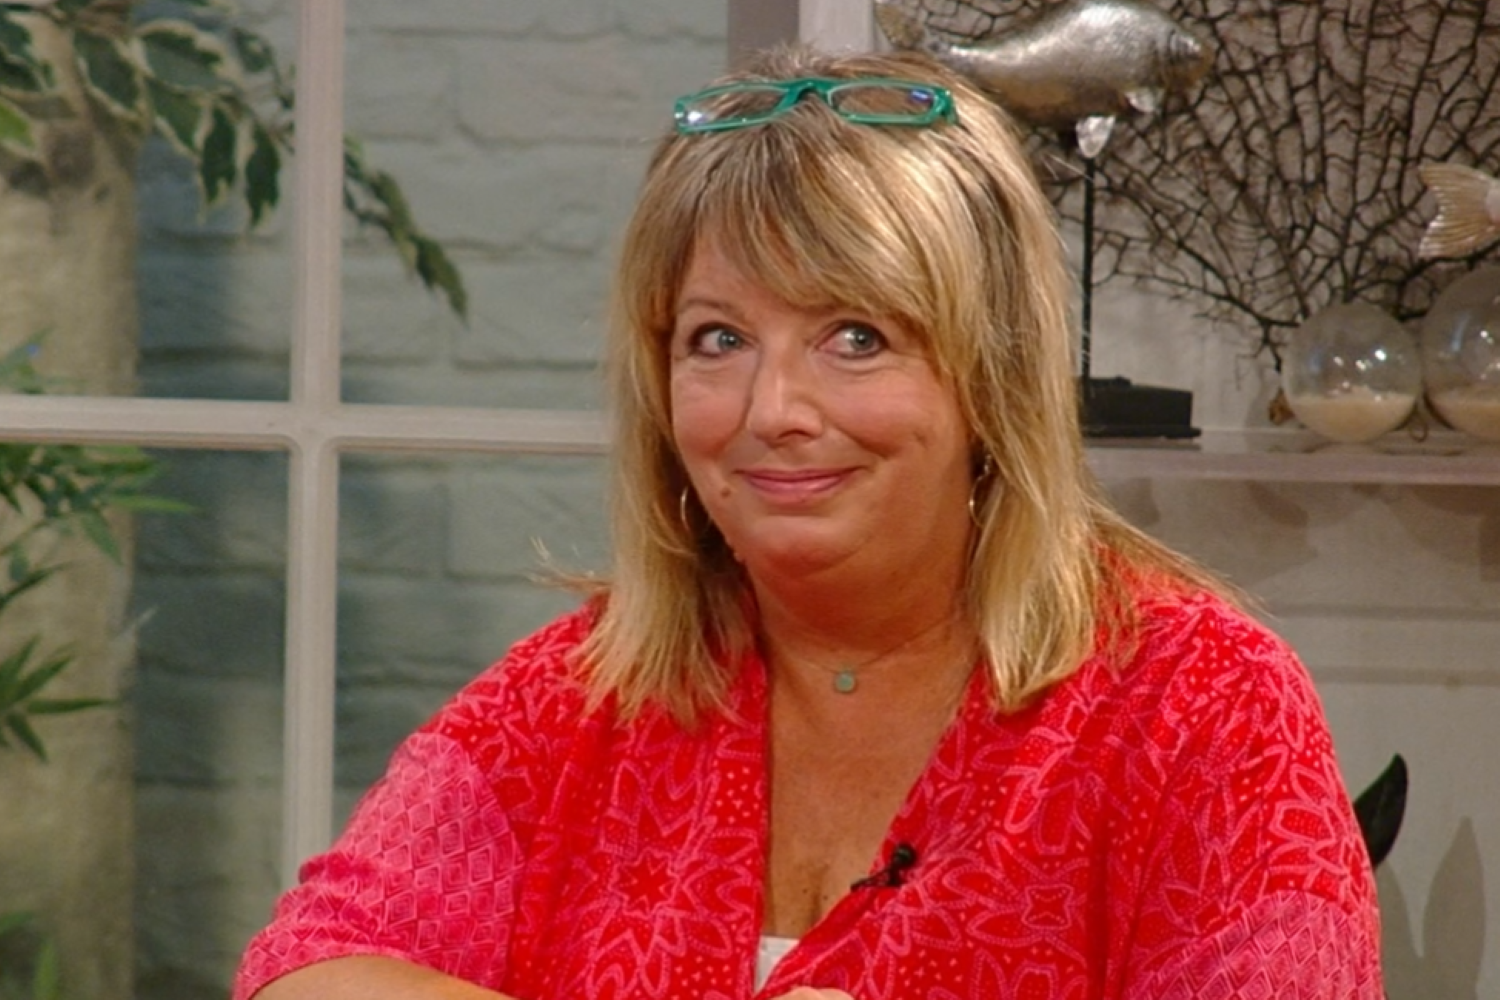 Saturday Kitchen chef Jane Baxter has viewers concerned